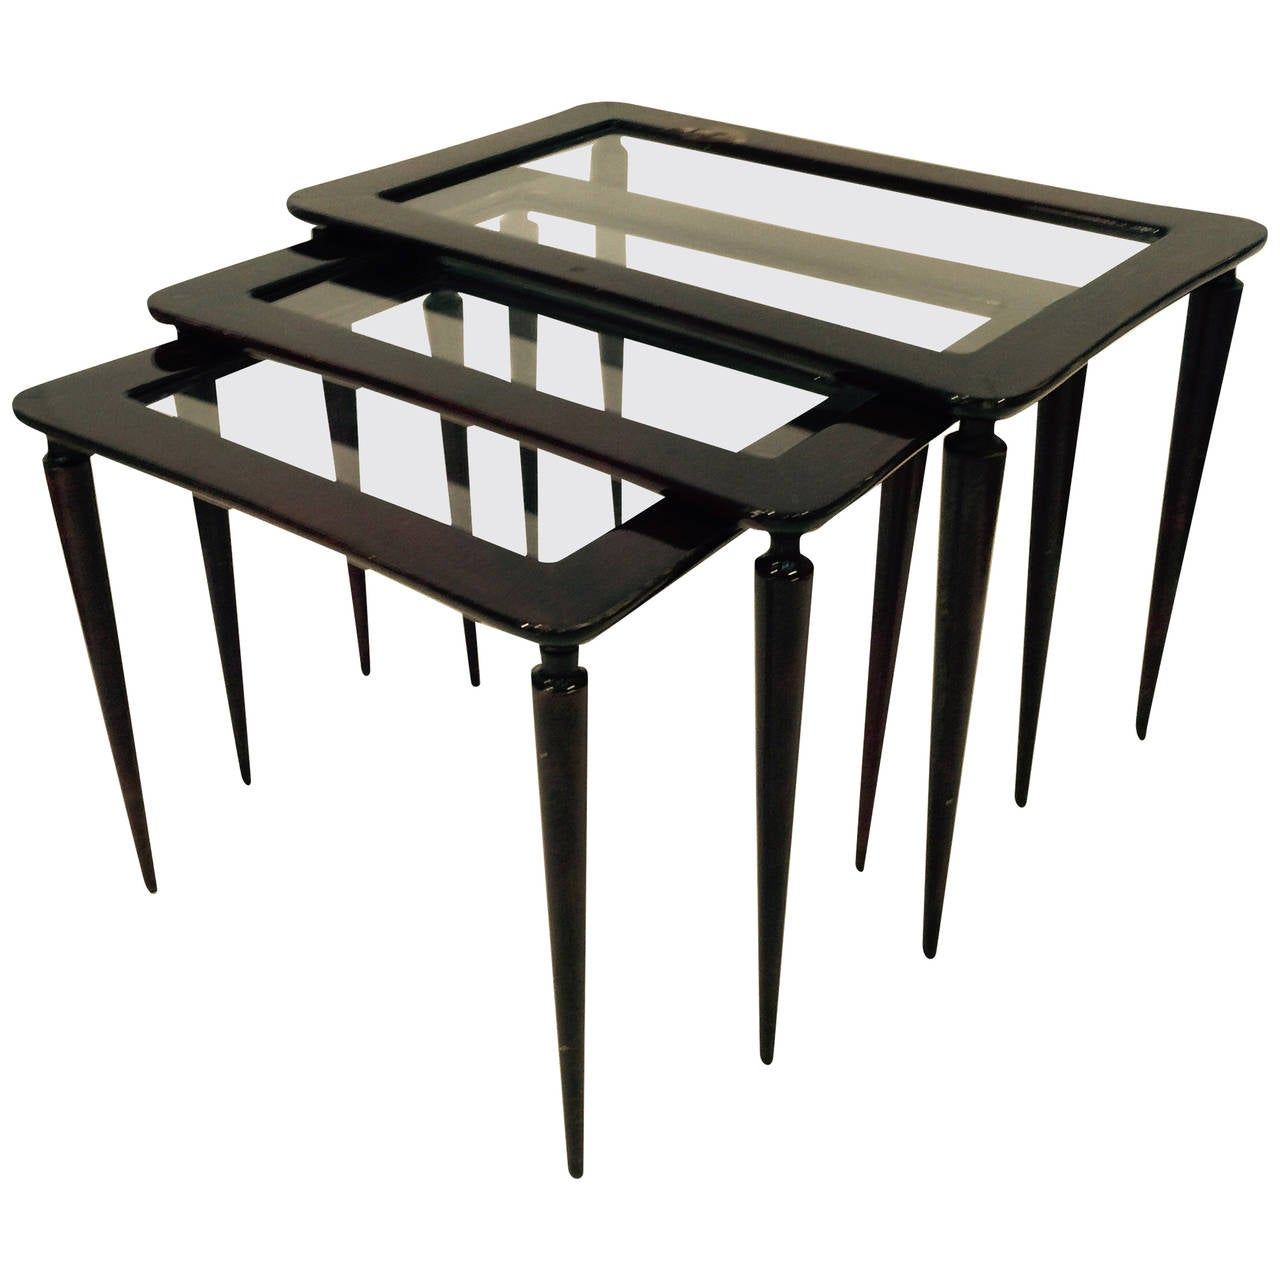 Italian lacquered wood and glass nesting tables for sale